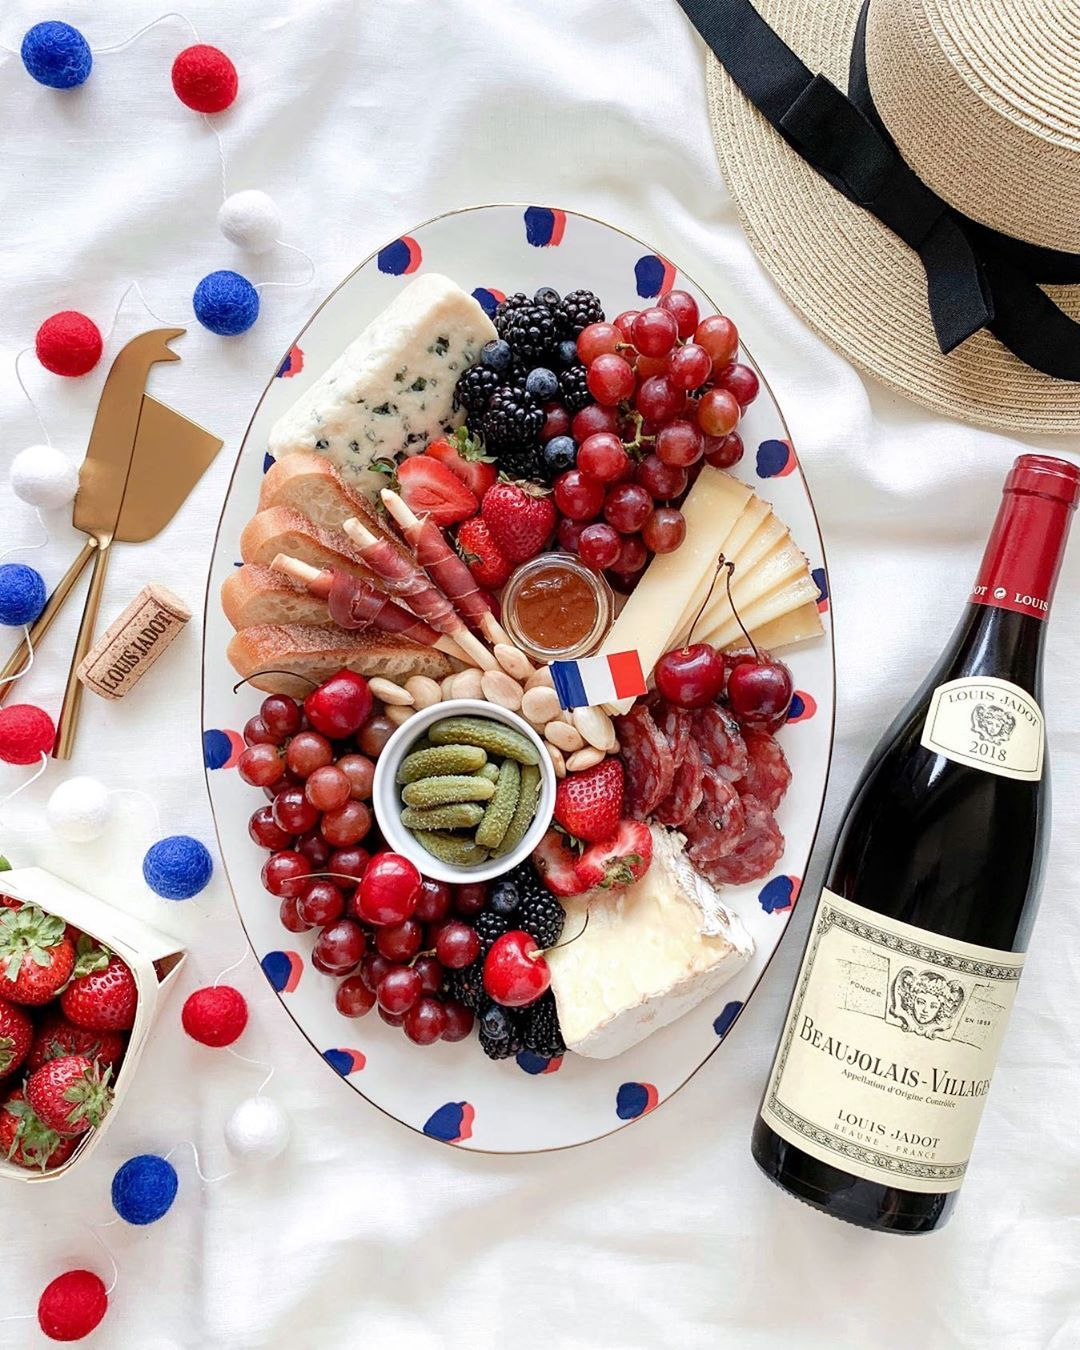 223 Likes 8 Comments Louis Jadot Usa Lovejadot On Instagram Saint Andre Comte And Roquefort Oh My Oui Love This In 2020 French Cheese Cheese Board Roquefort